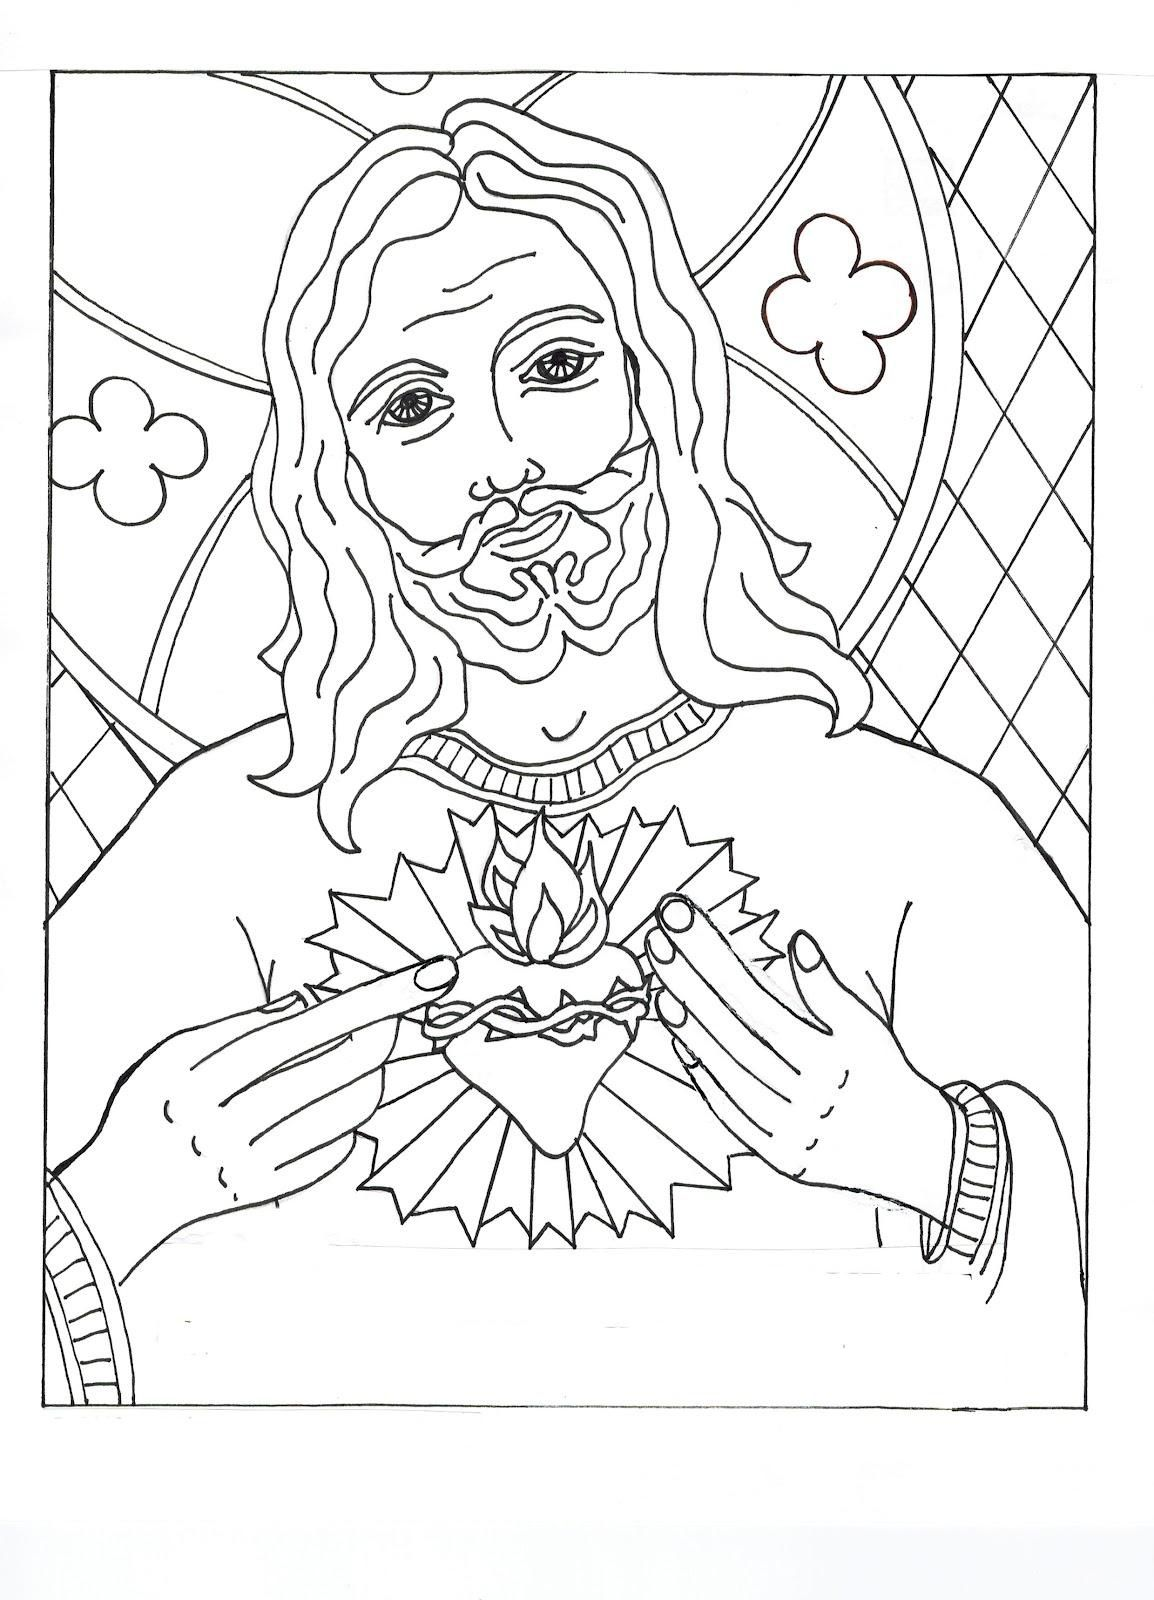 heart and jesus coloring pages - photo#12